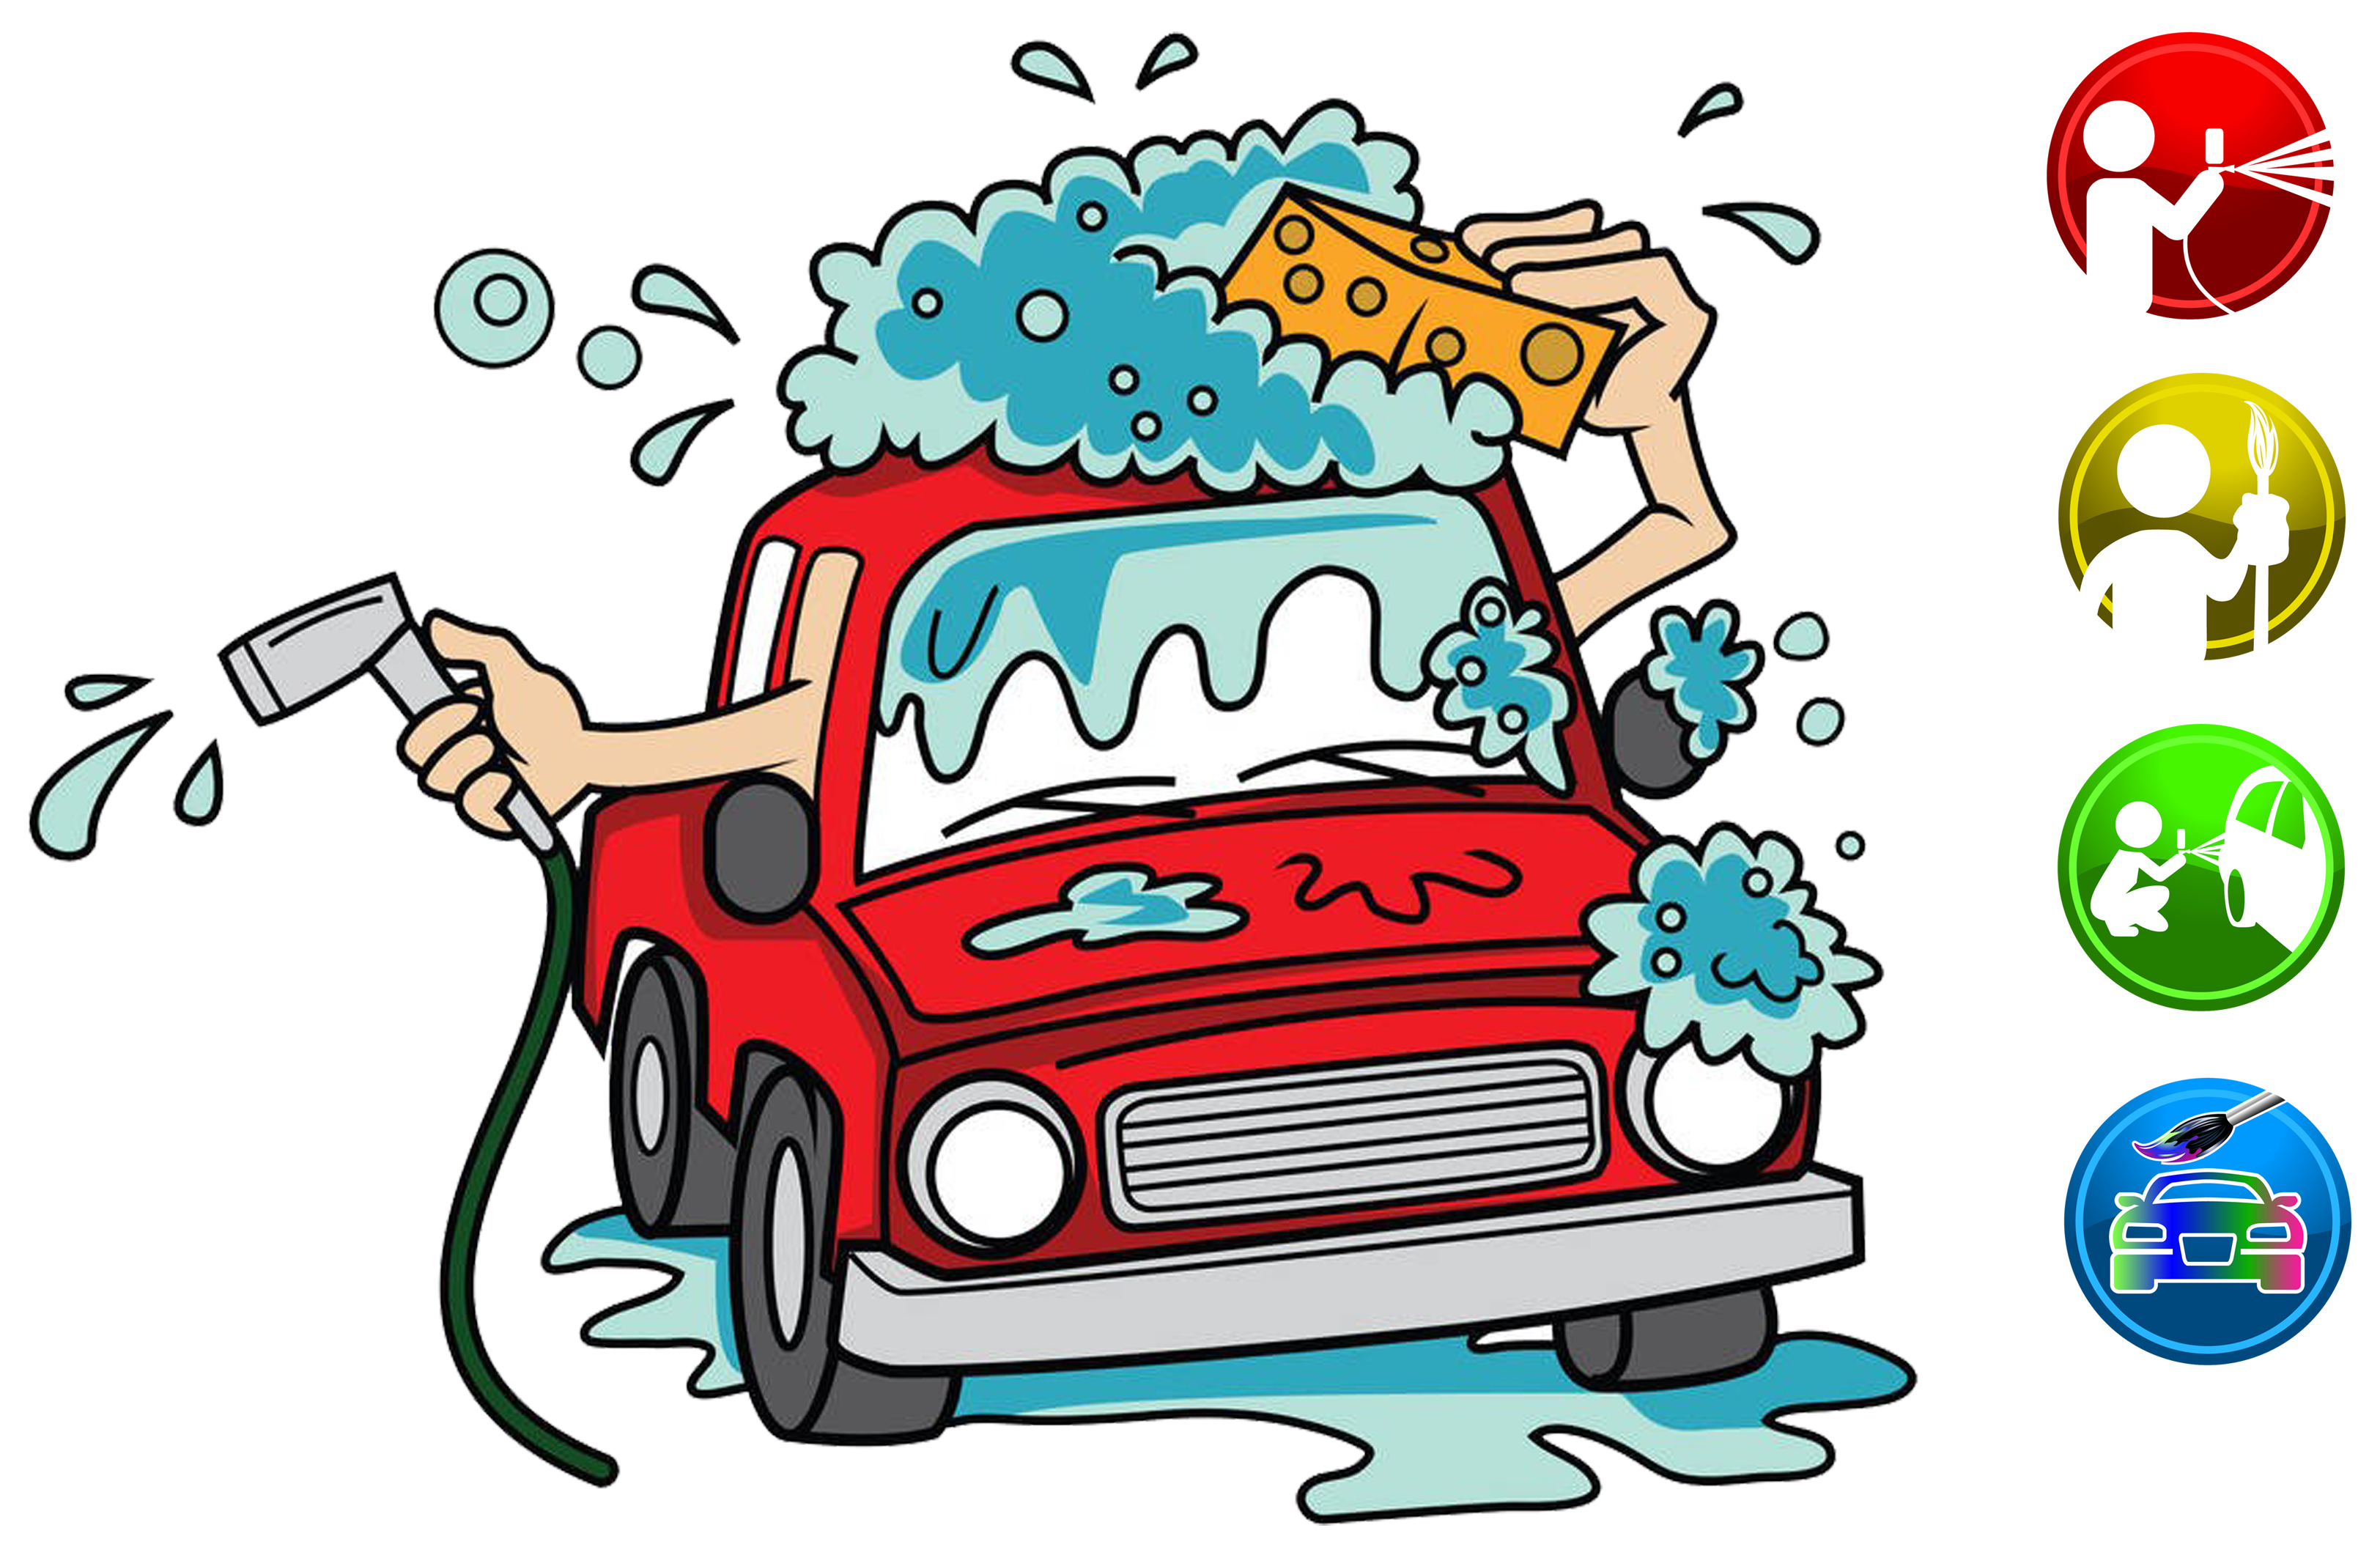 Car wash clipart transparent jpg library Car wash Cartoon Clip art - Cartoon car wash advertisement 3248*2126 ... jpg library